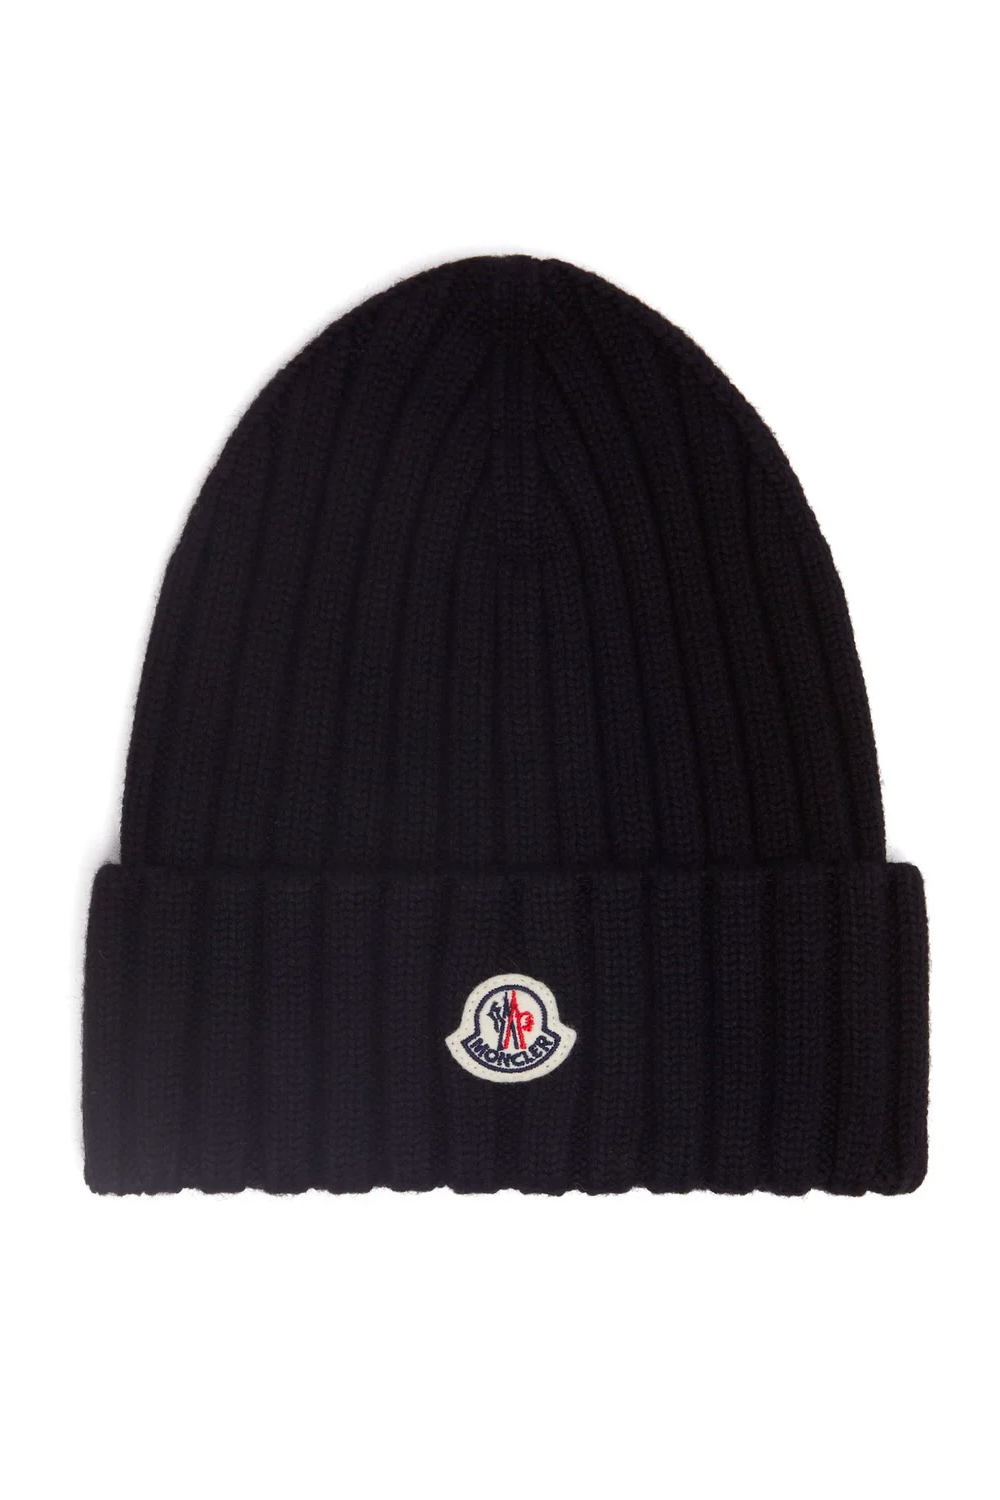 The-best-luxury-gifts-for-men-Moncler-Logo-patch-merino-wool-beanie-Pinterest